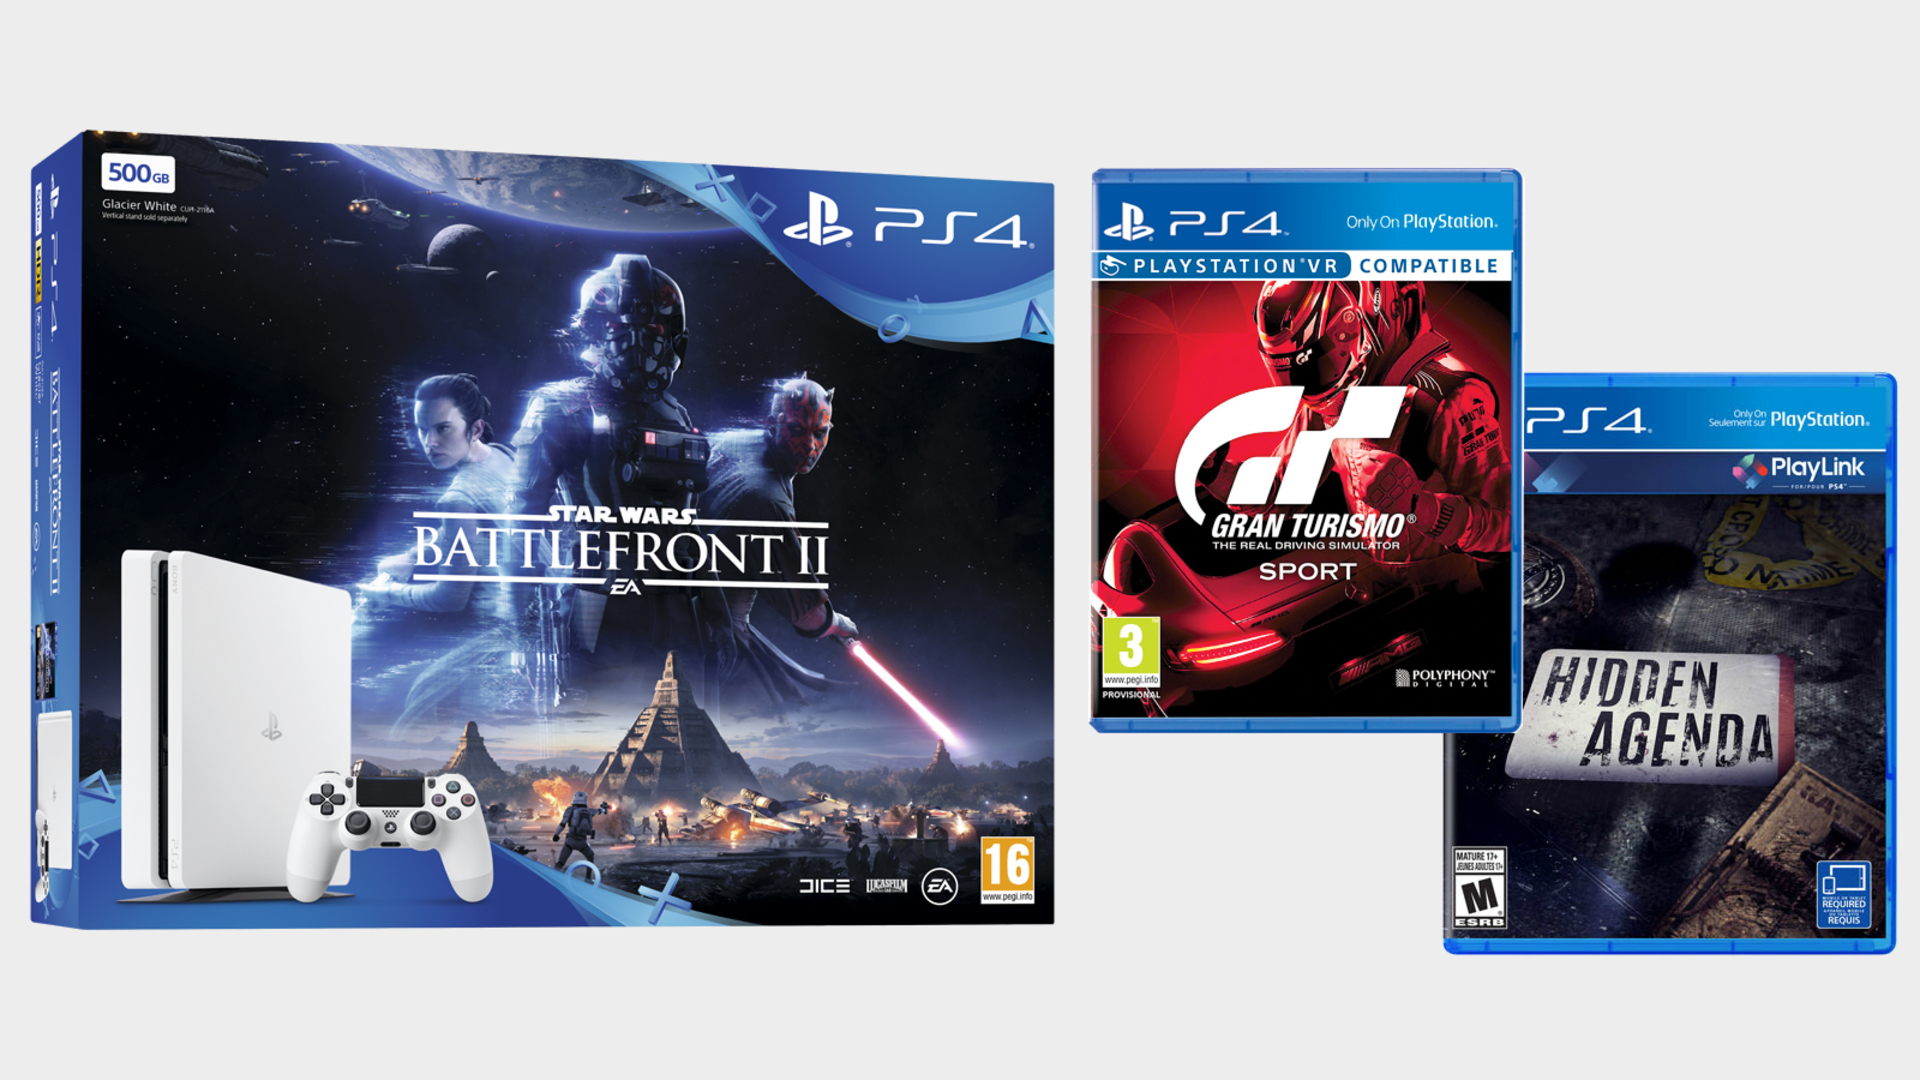 3946e04d061 This Star Wars Battlefront 2 PS4 pack comes with GT Sport and Hidden Agenda  for only £199.99